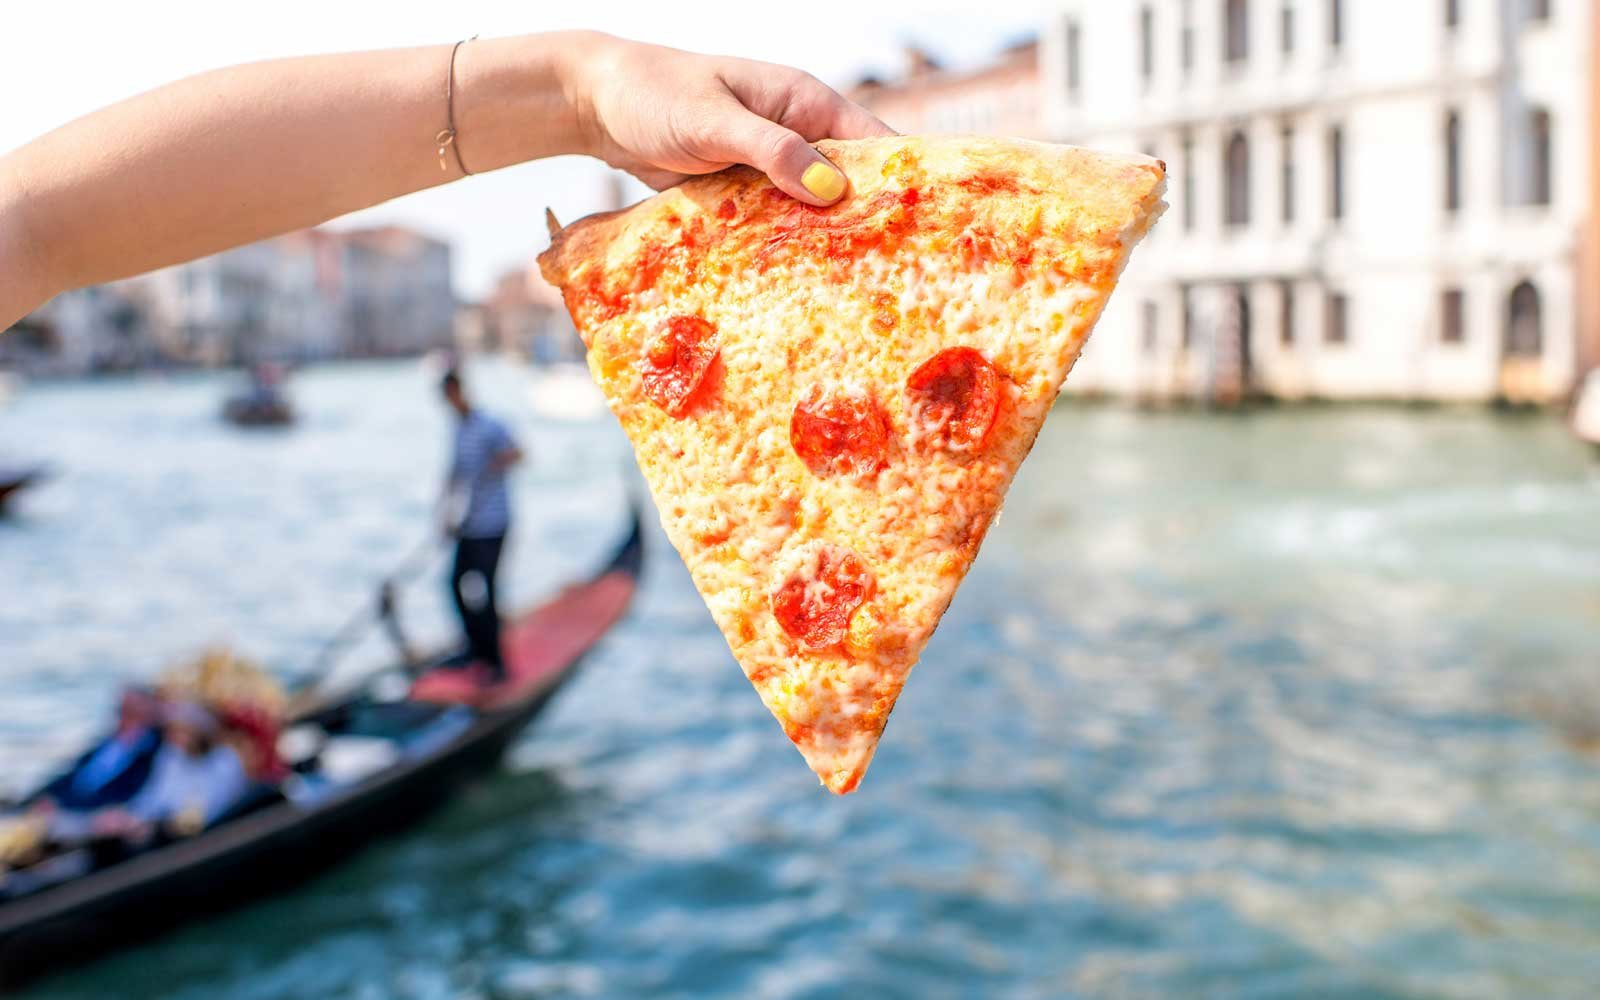 pizza venice lot italy food drink slice eating eat chef stay harder italian water traditional guide shops lu canal zoom